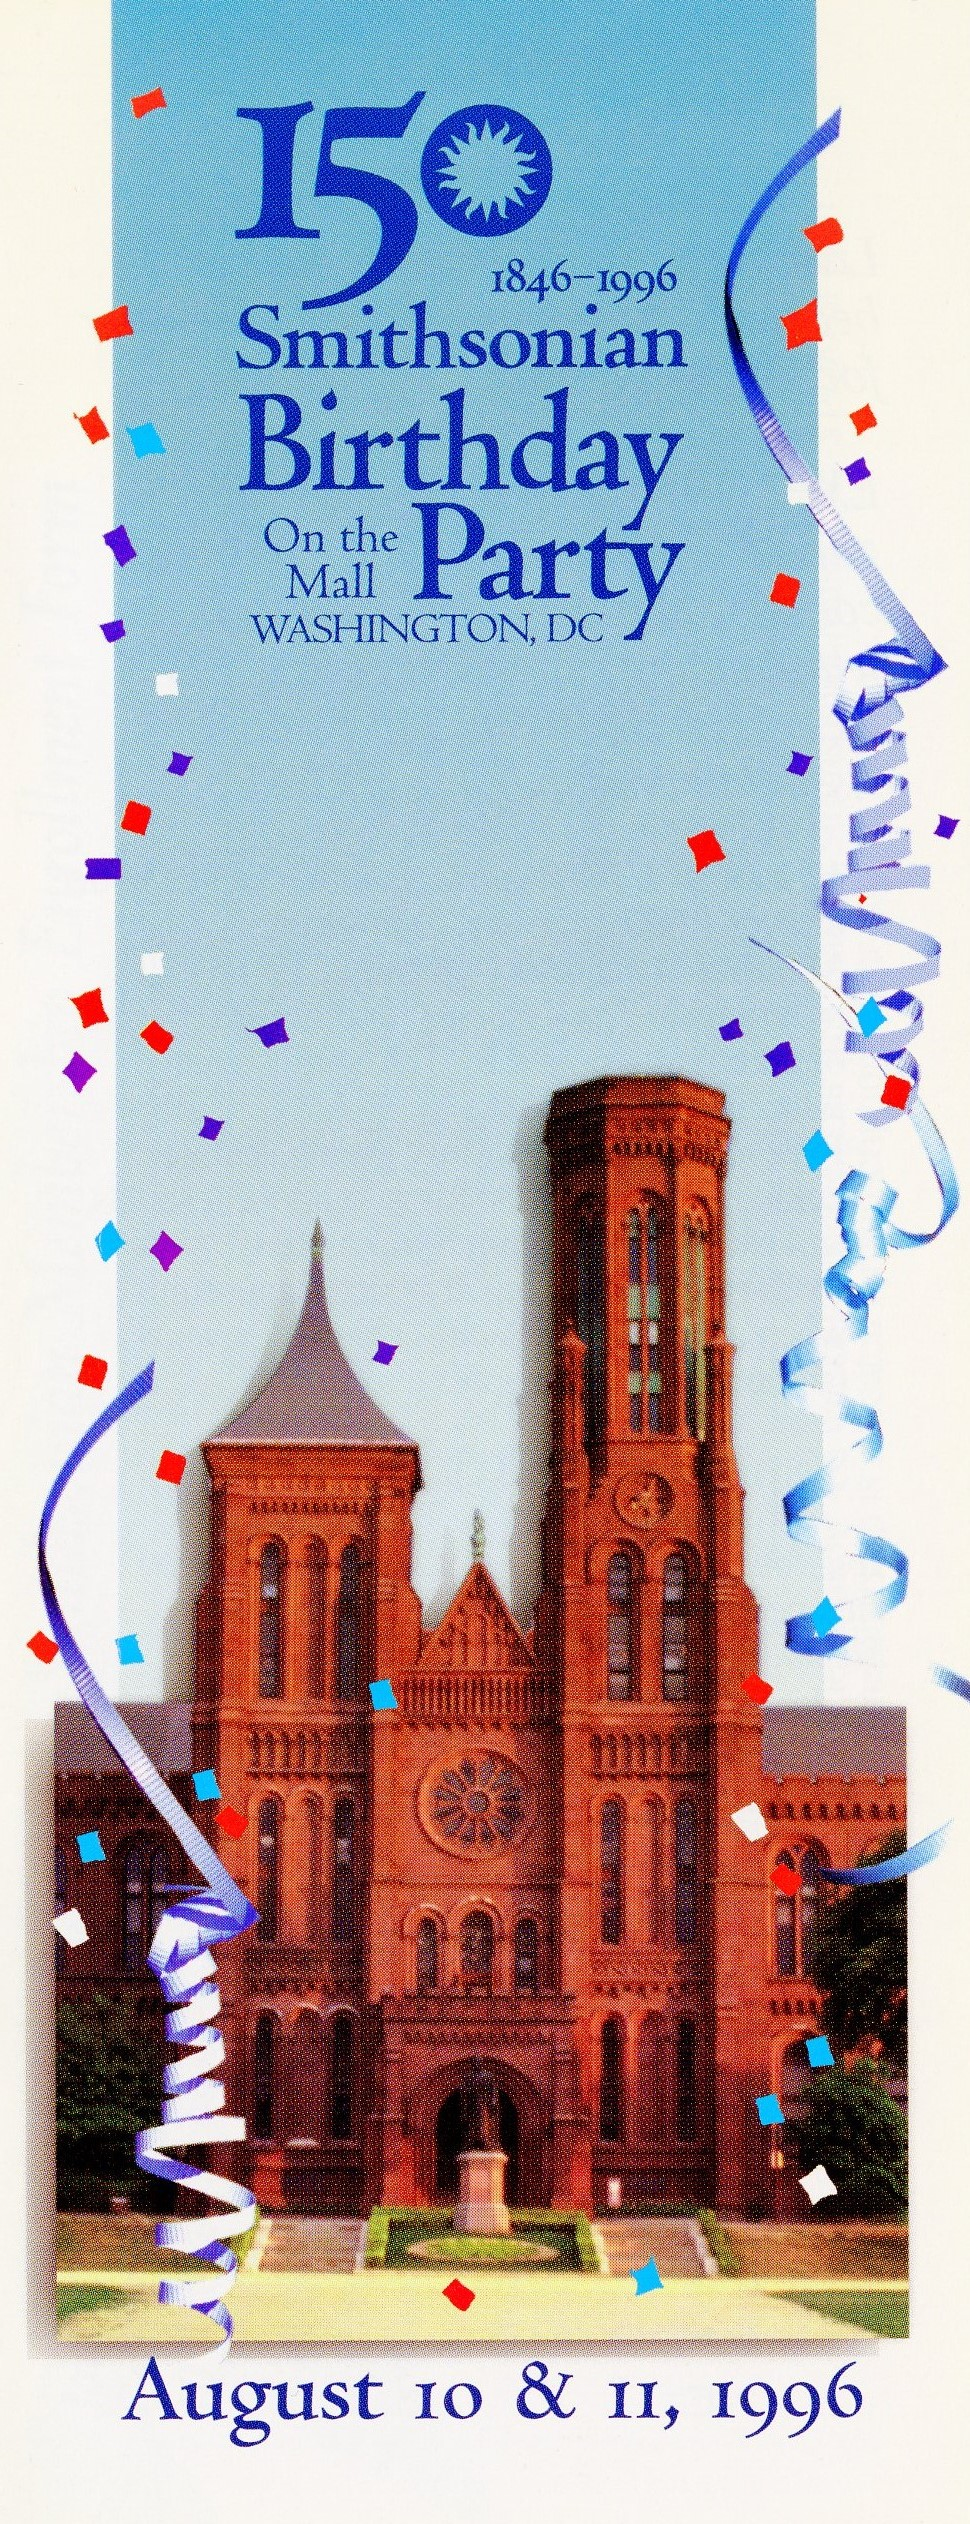 Program Cover - Smithsonian 150th Birthday Party on the National Mall, August 10-11, 1996. Image no.